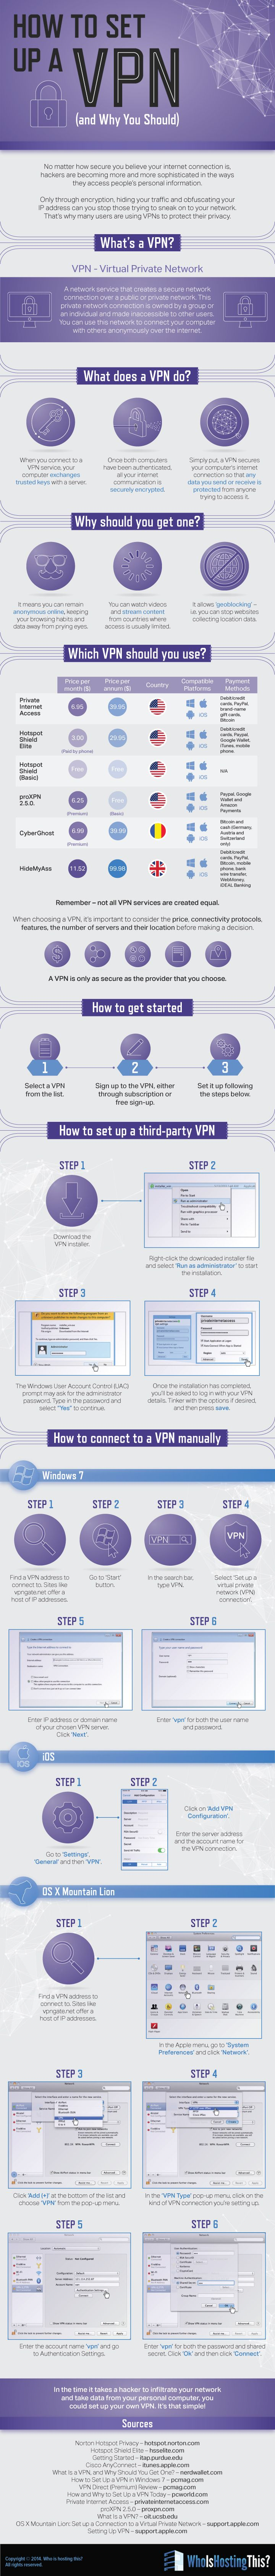 How to set up a VPN and a brief summary of the services out there.